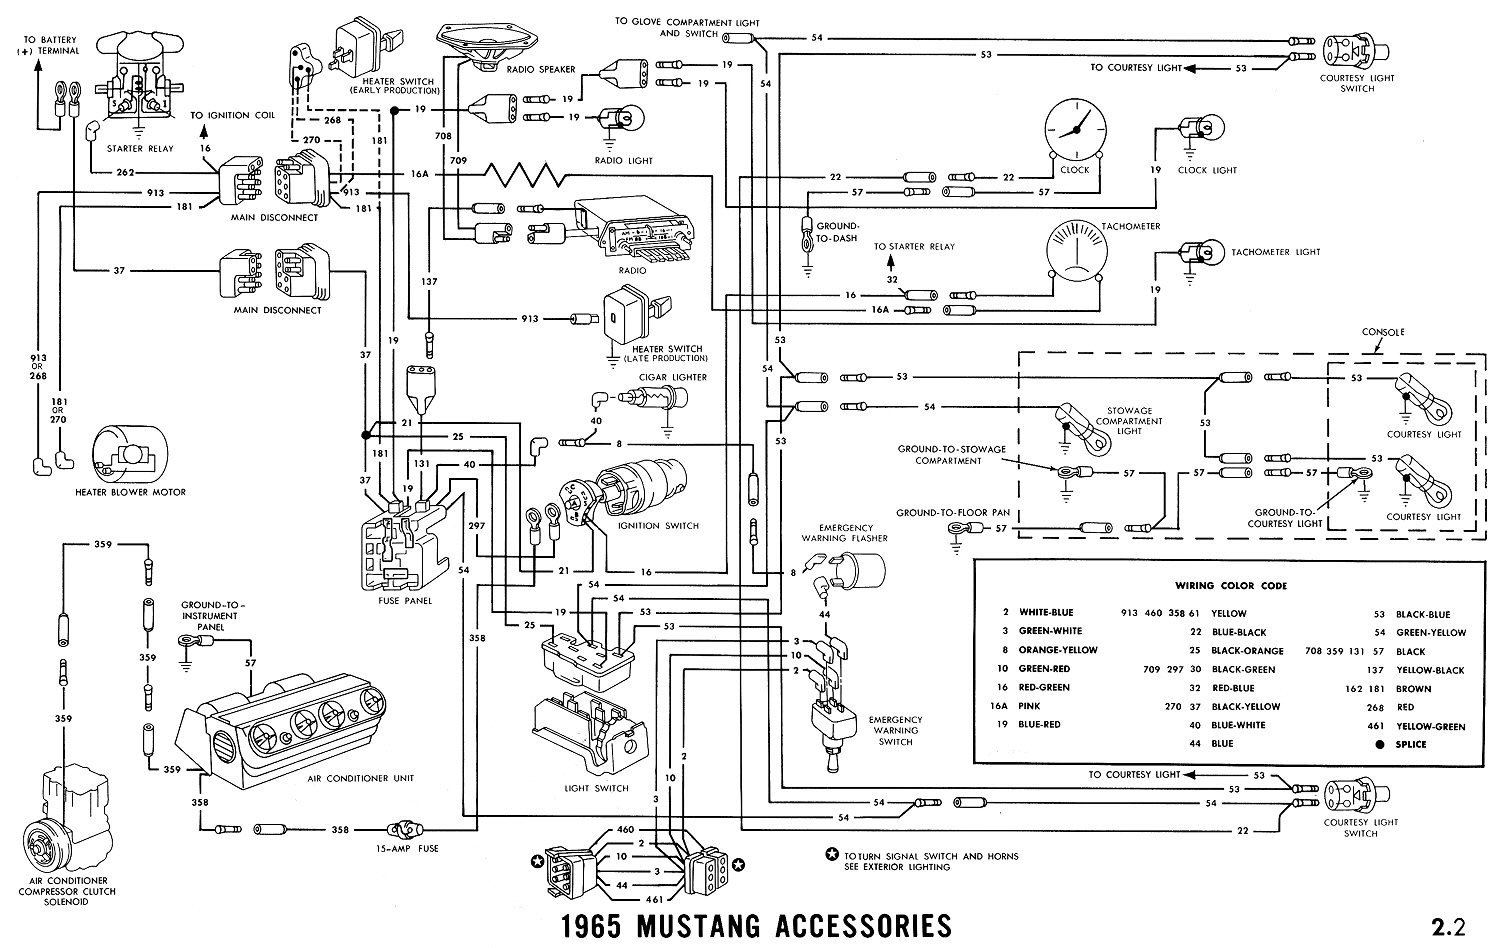 1965i 1965 mustang wiring diagrams average joe restoration 1965 mustang instrument cluster wiring diagram at n-0.co